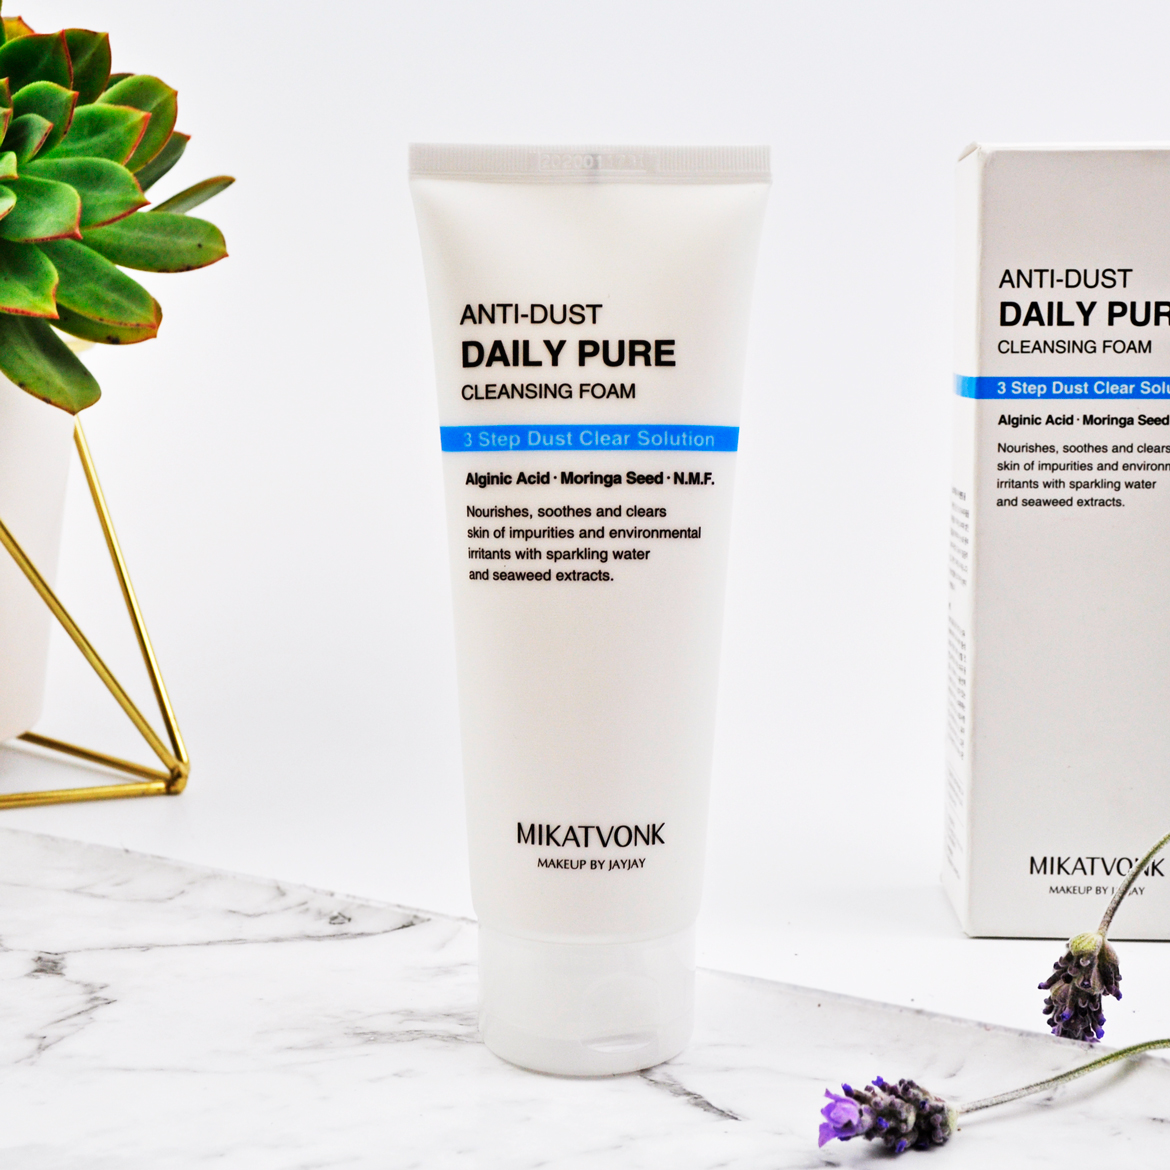 Anti-dust Daily Pure Cleansing Foam